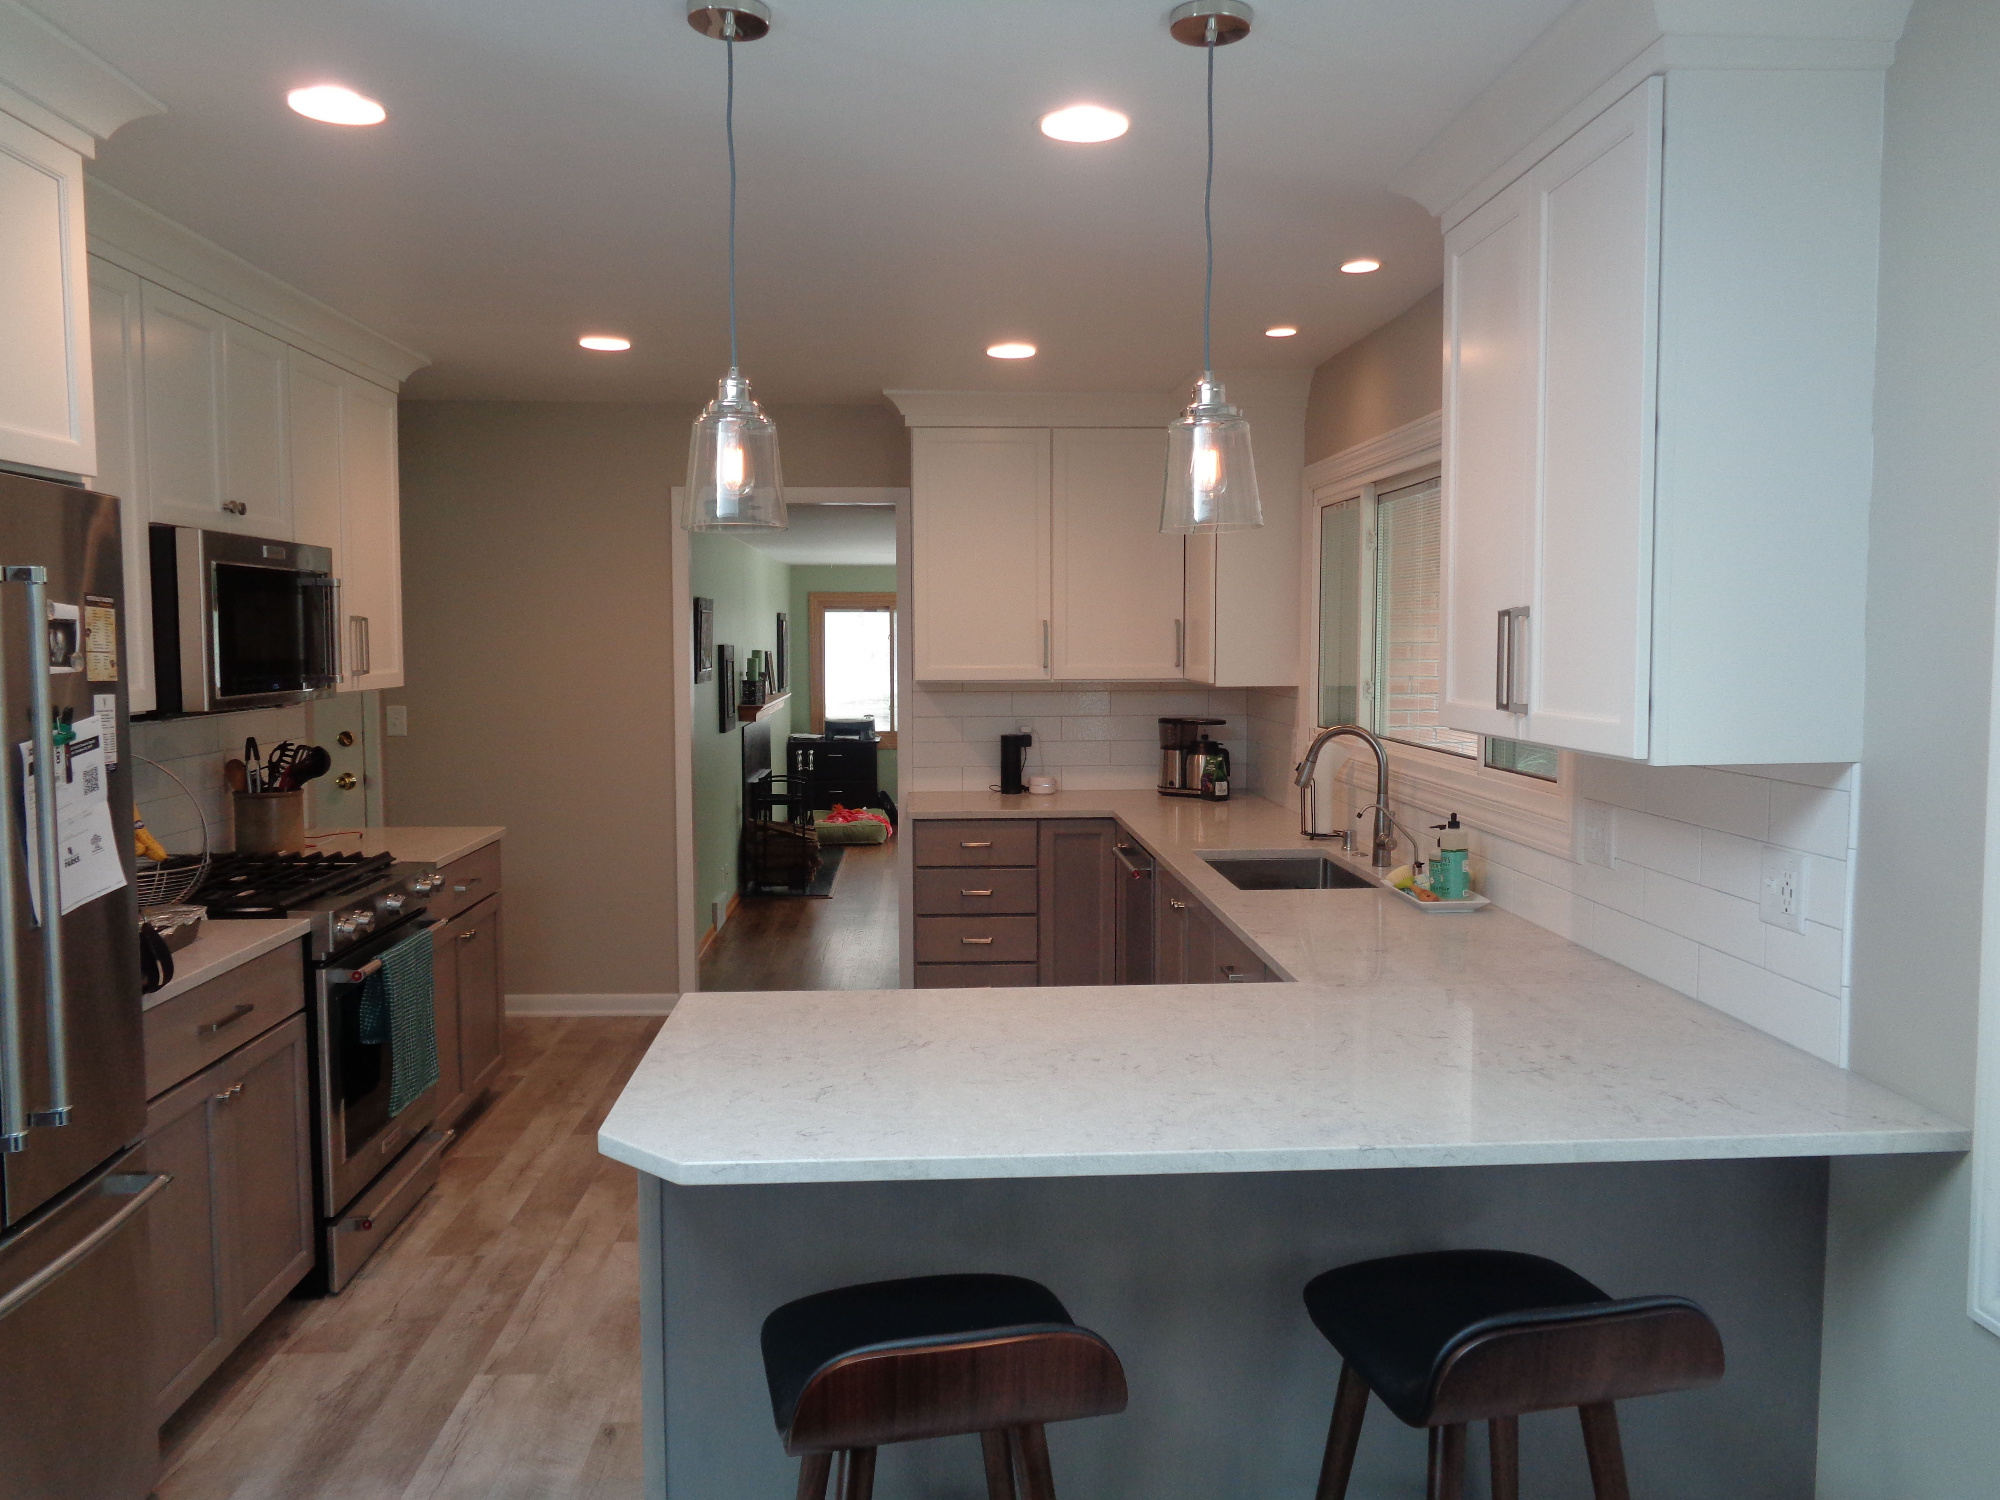 Waukesha Bathroom Remodeling Kitchen Remodeling Home Remodelers - Bathroom remodeling brookfield wi